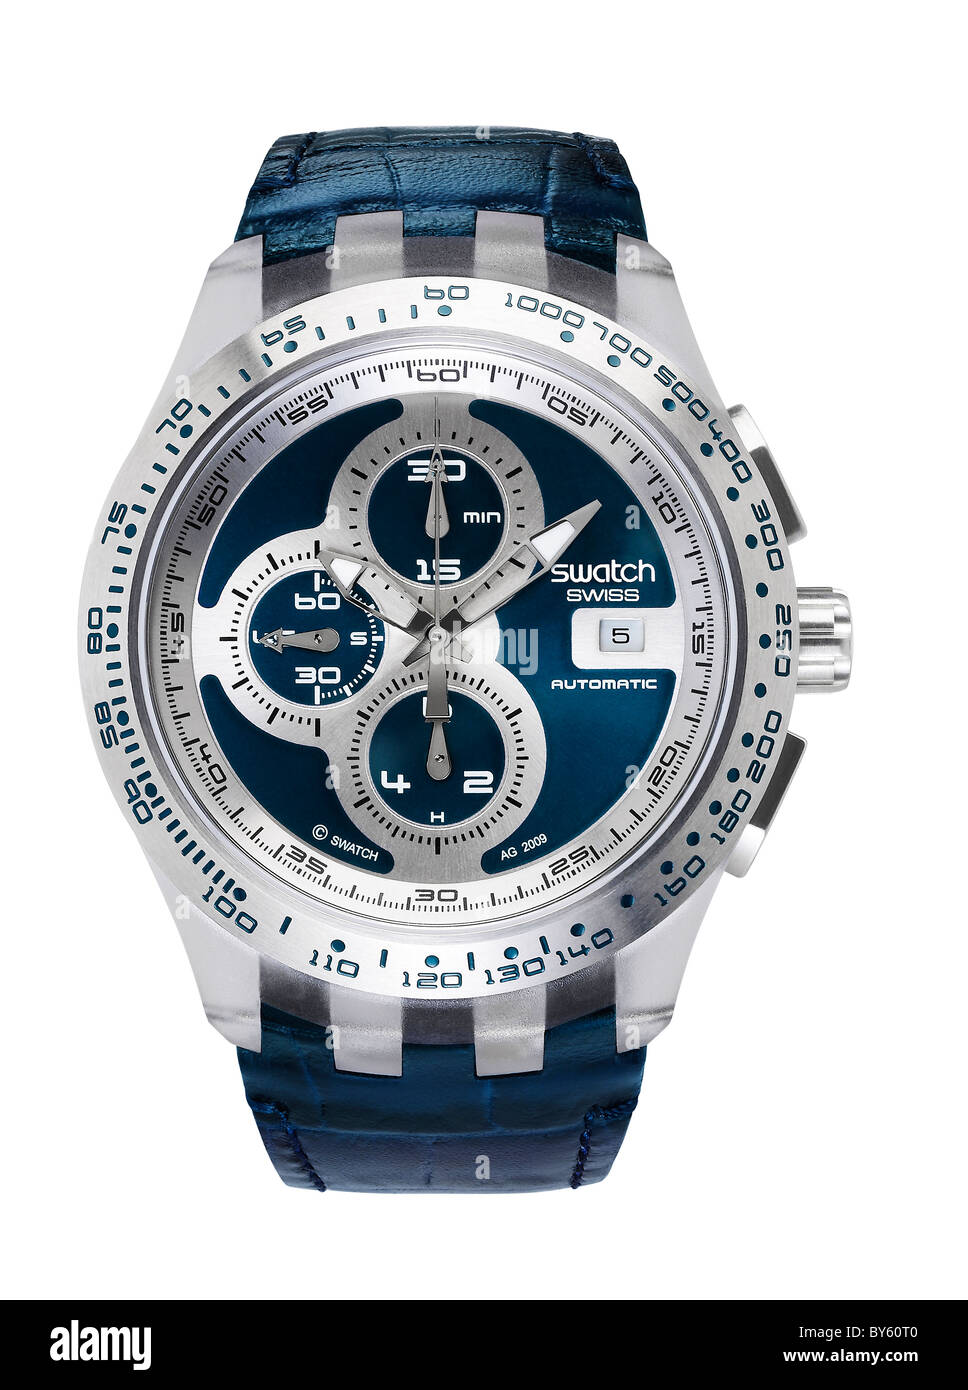 swatch watch in Blue wrist time time piece hands - Stock Image